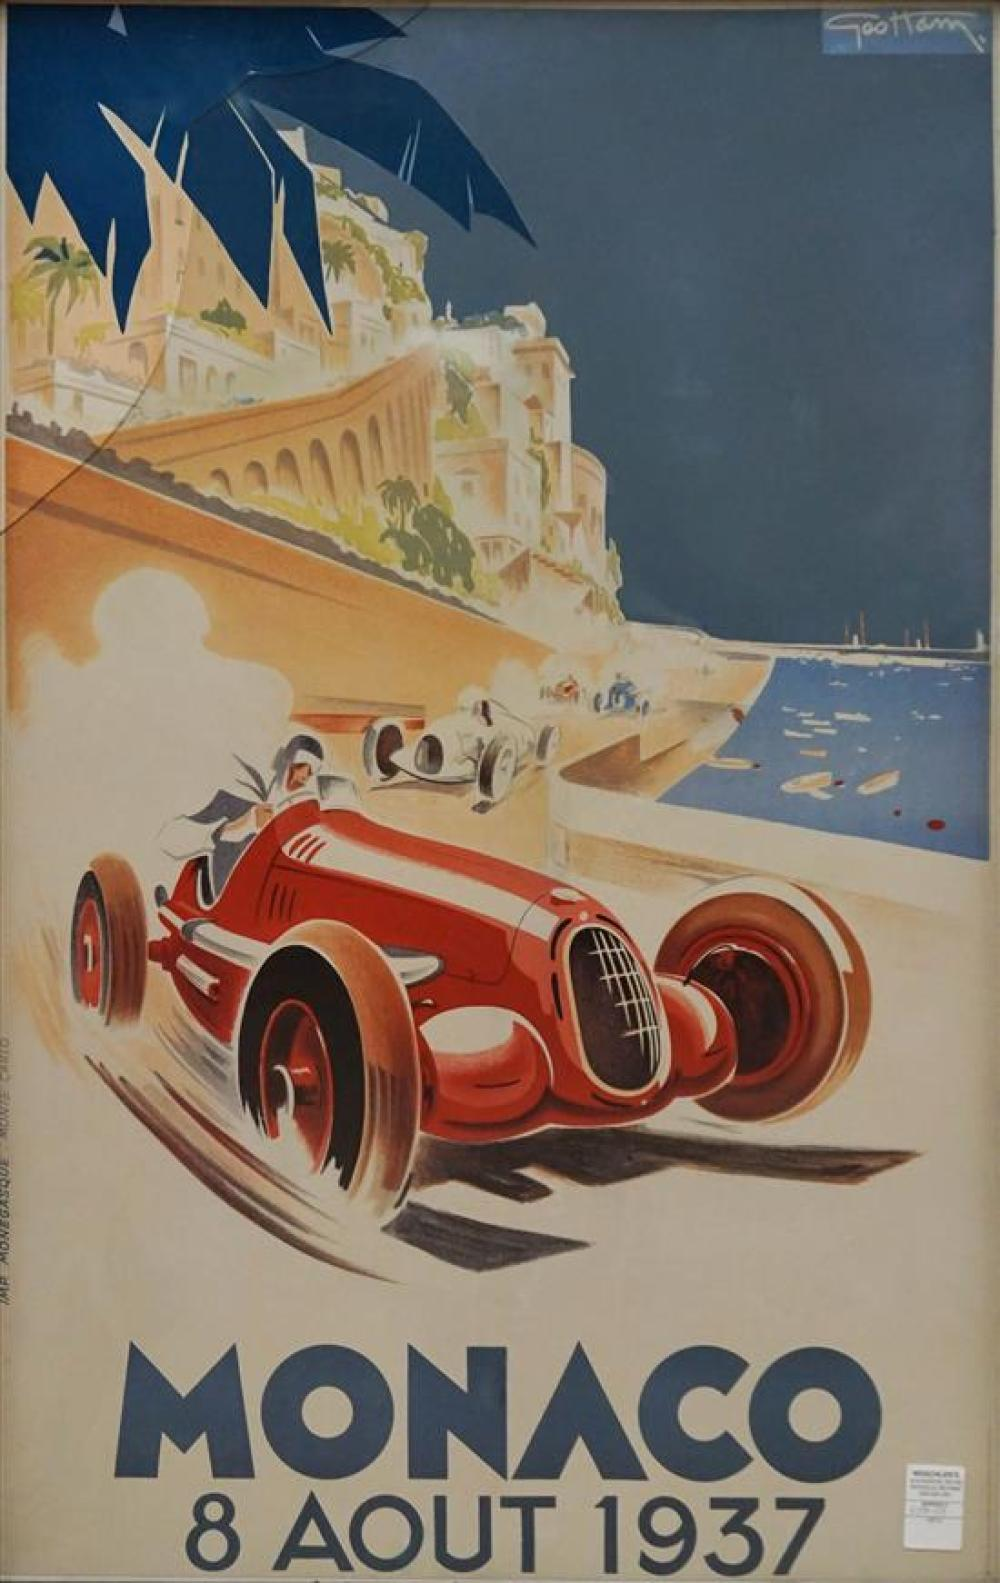 Monaco, 8 Aout 1937, Chromolithograph, Frame: 41-1/2 x 26-3/4 in (Glass Broken Upper Left)